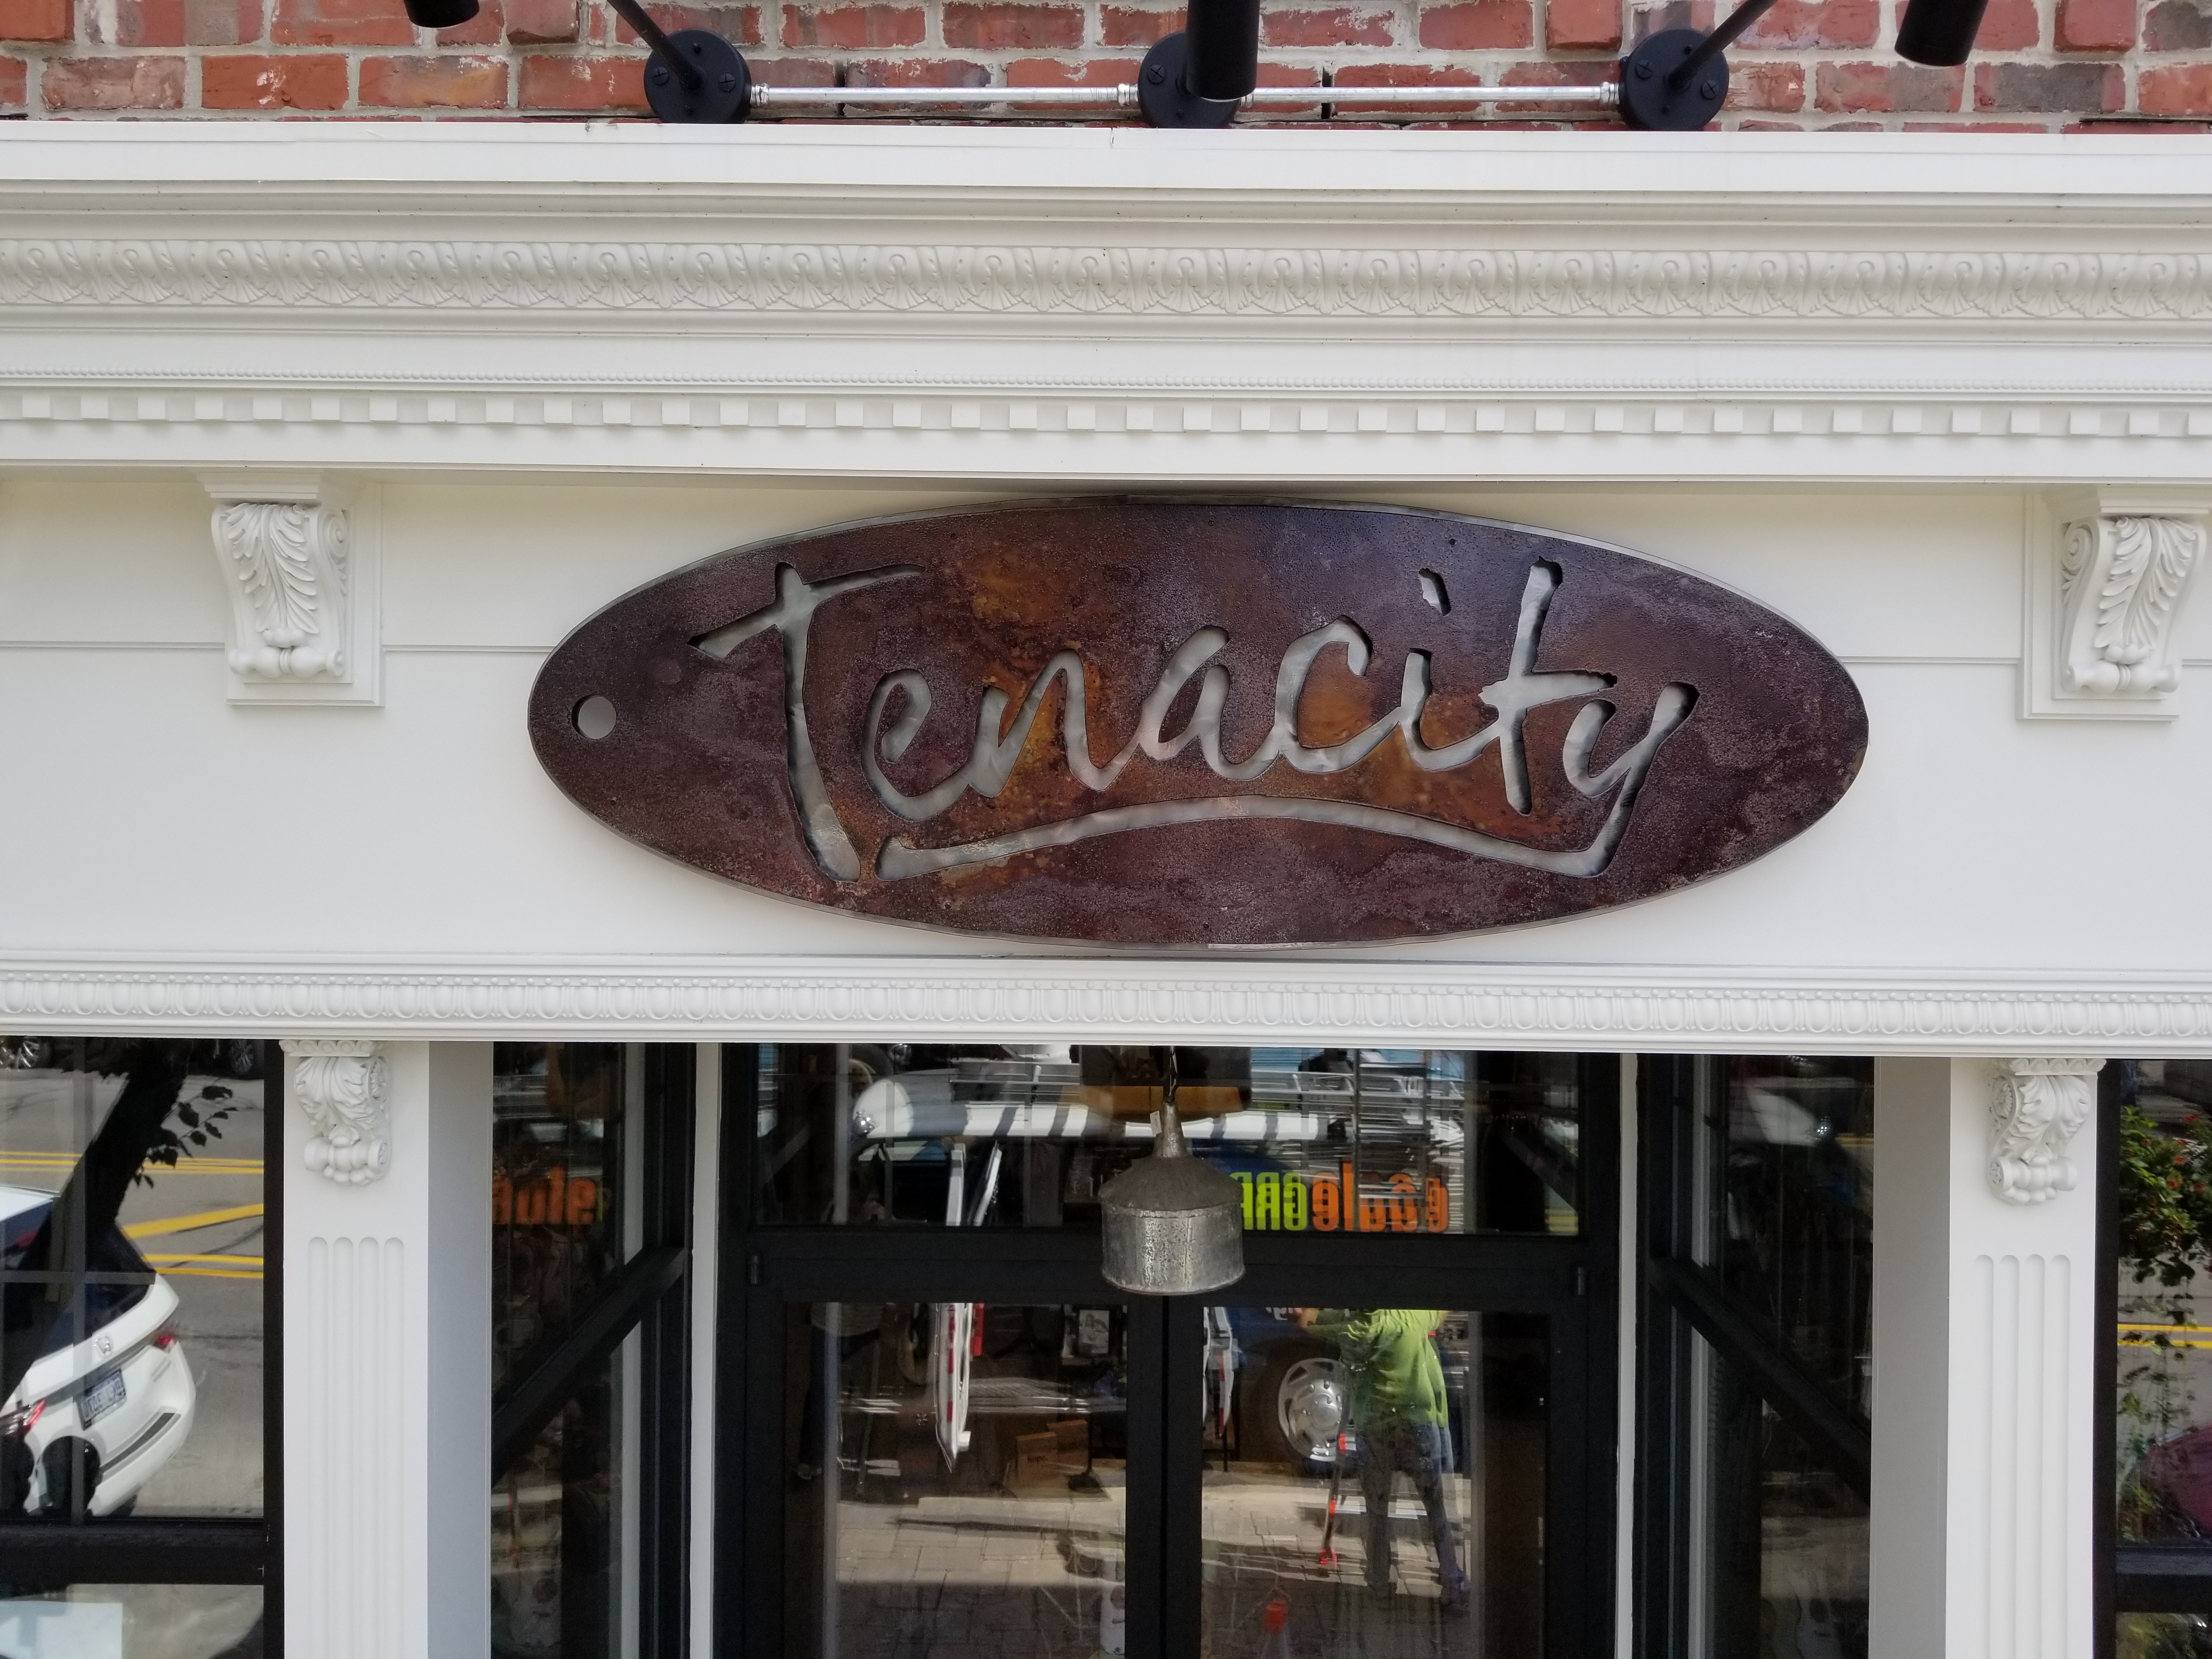 Sign Install for Tenacity